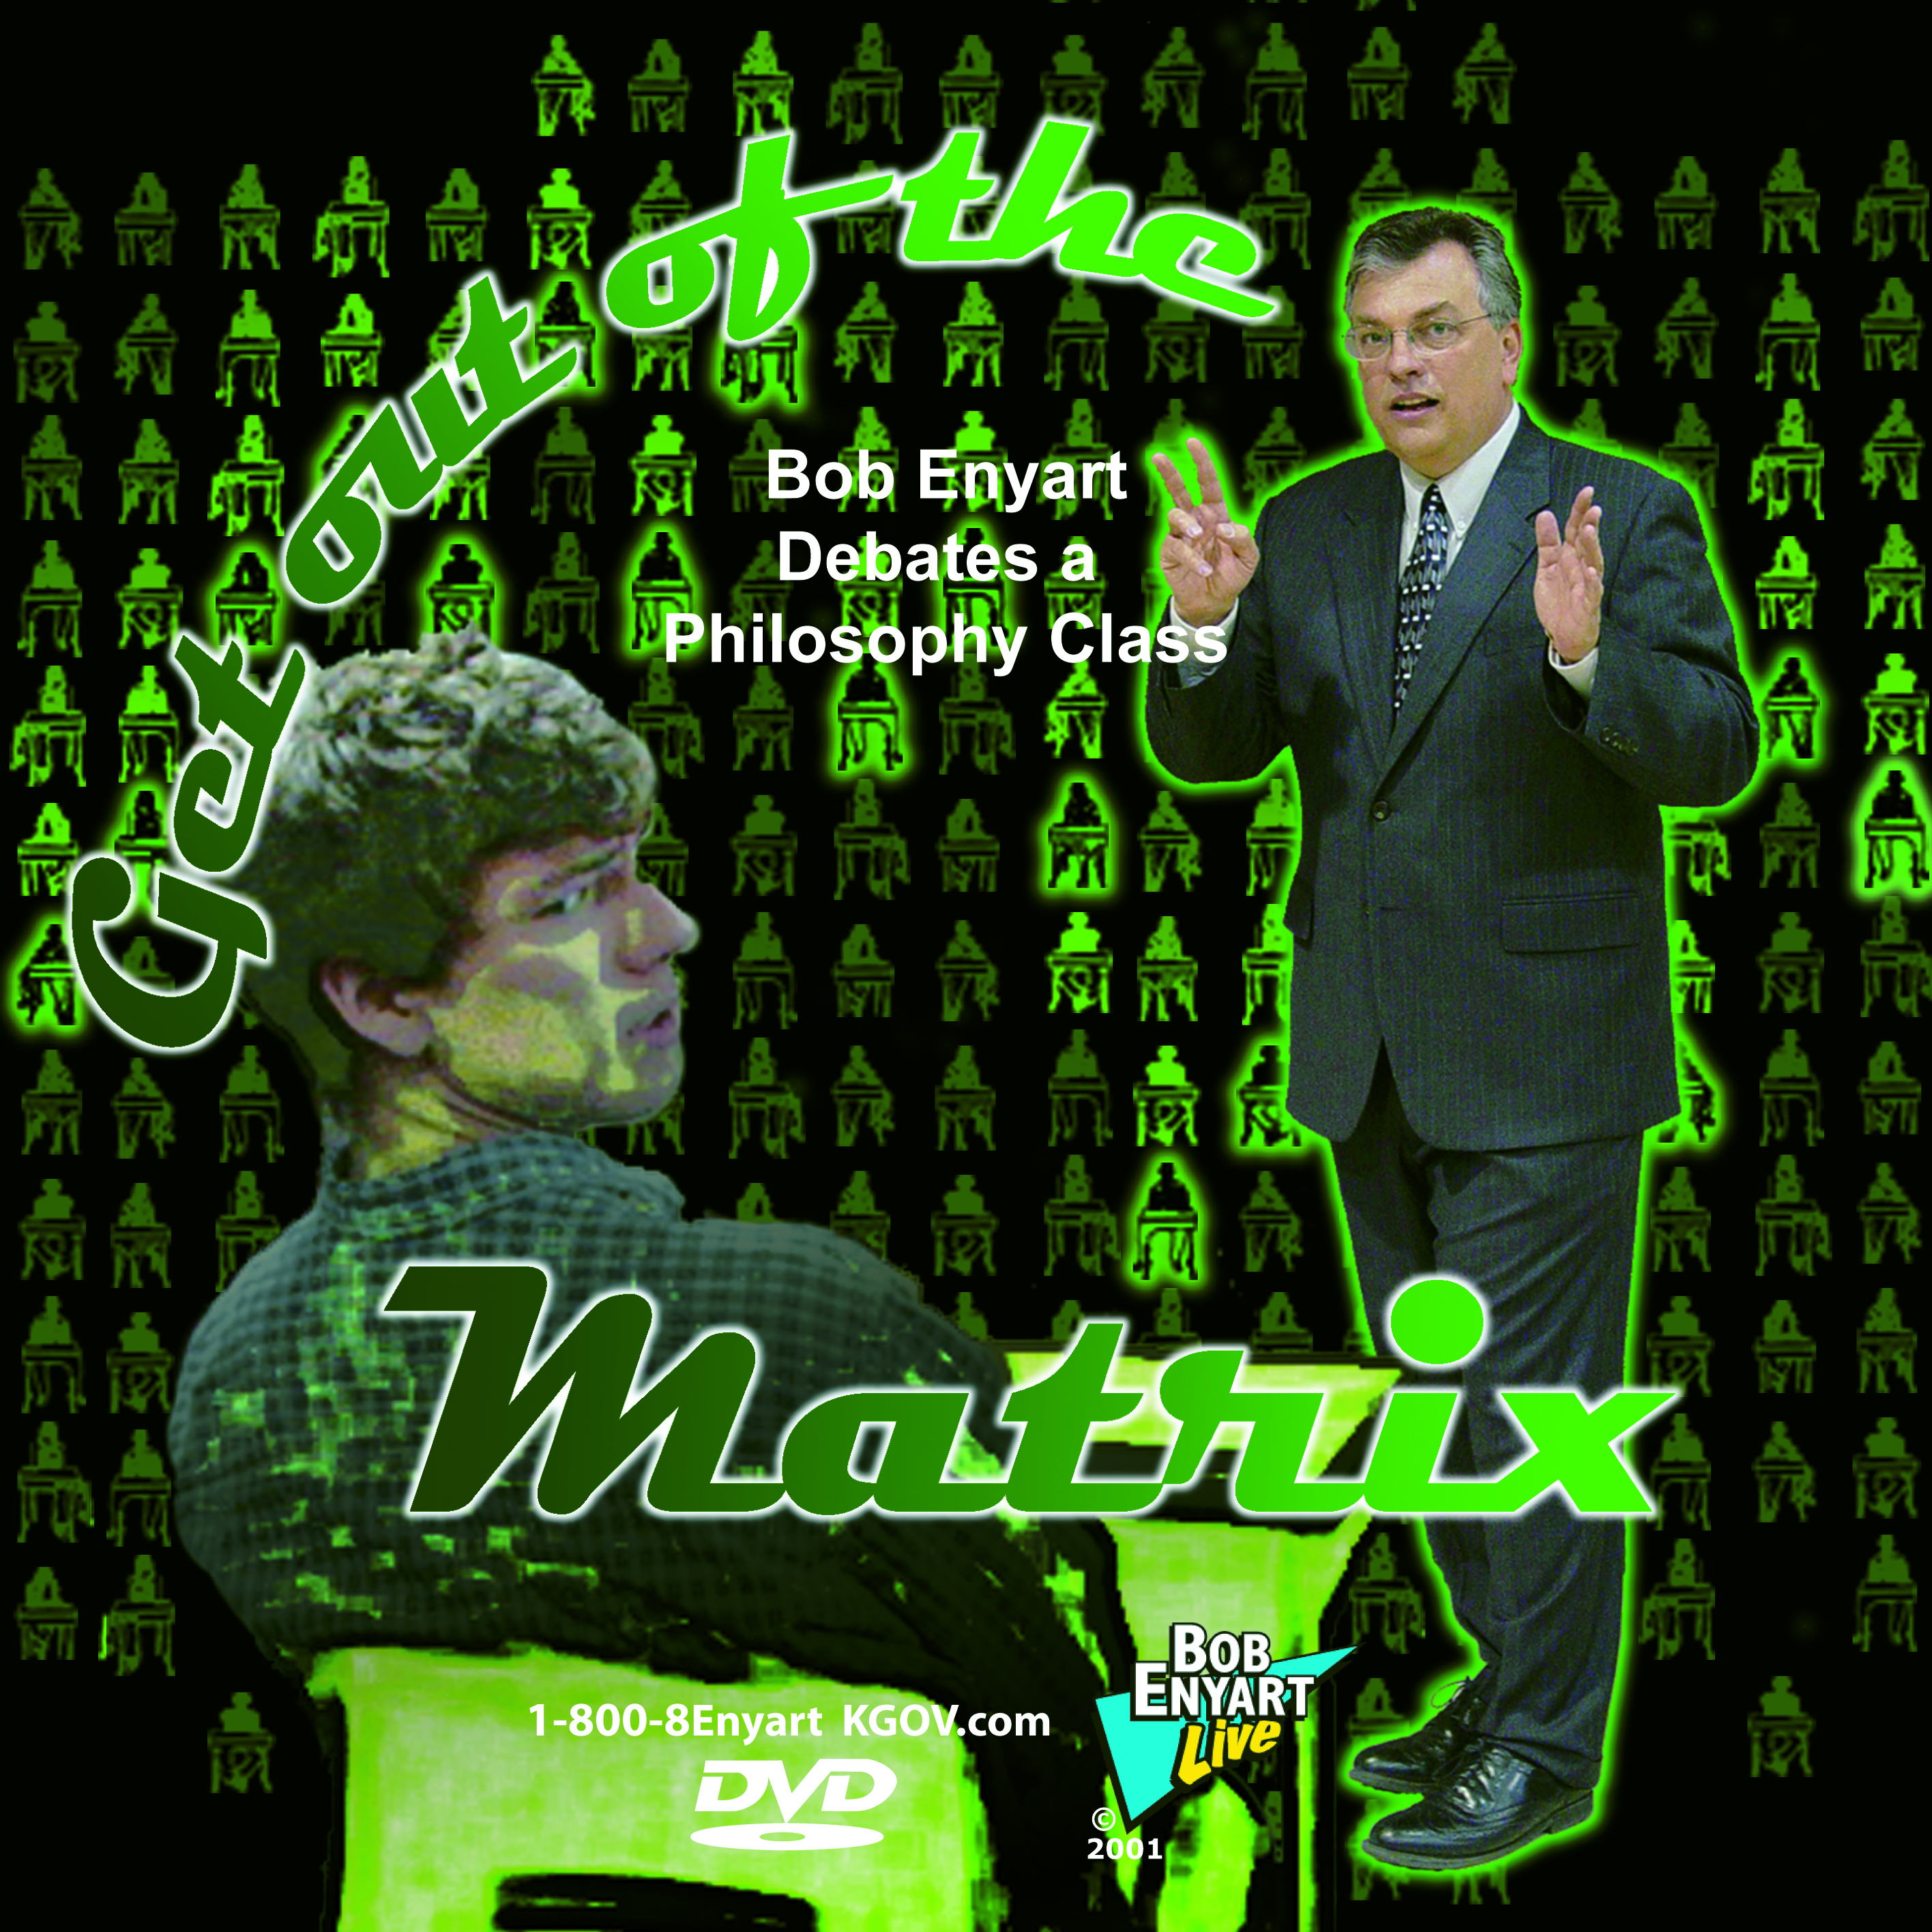 Get%20Out%20of%20the%20Matrix_converted.jpg